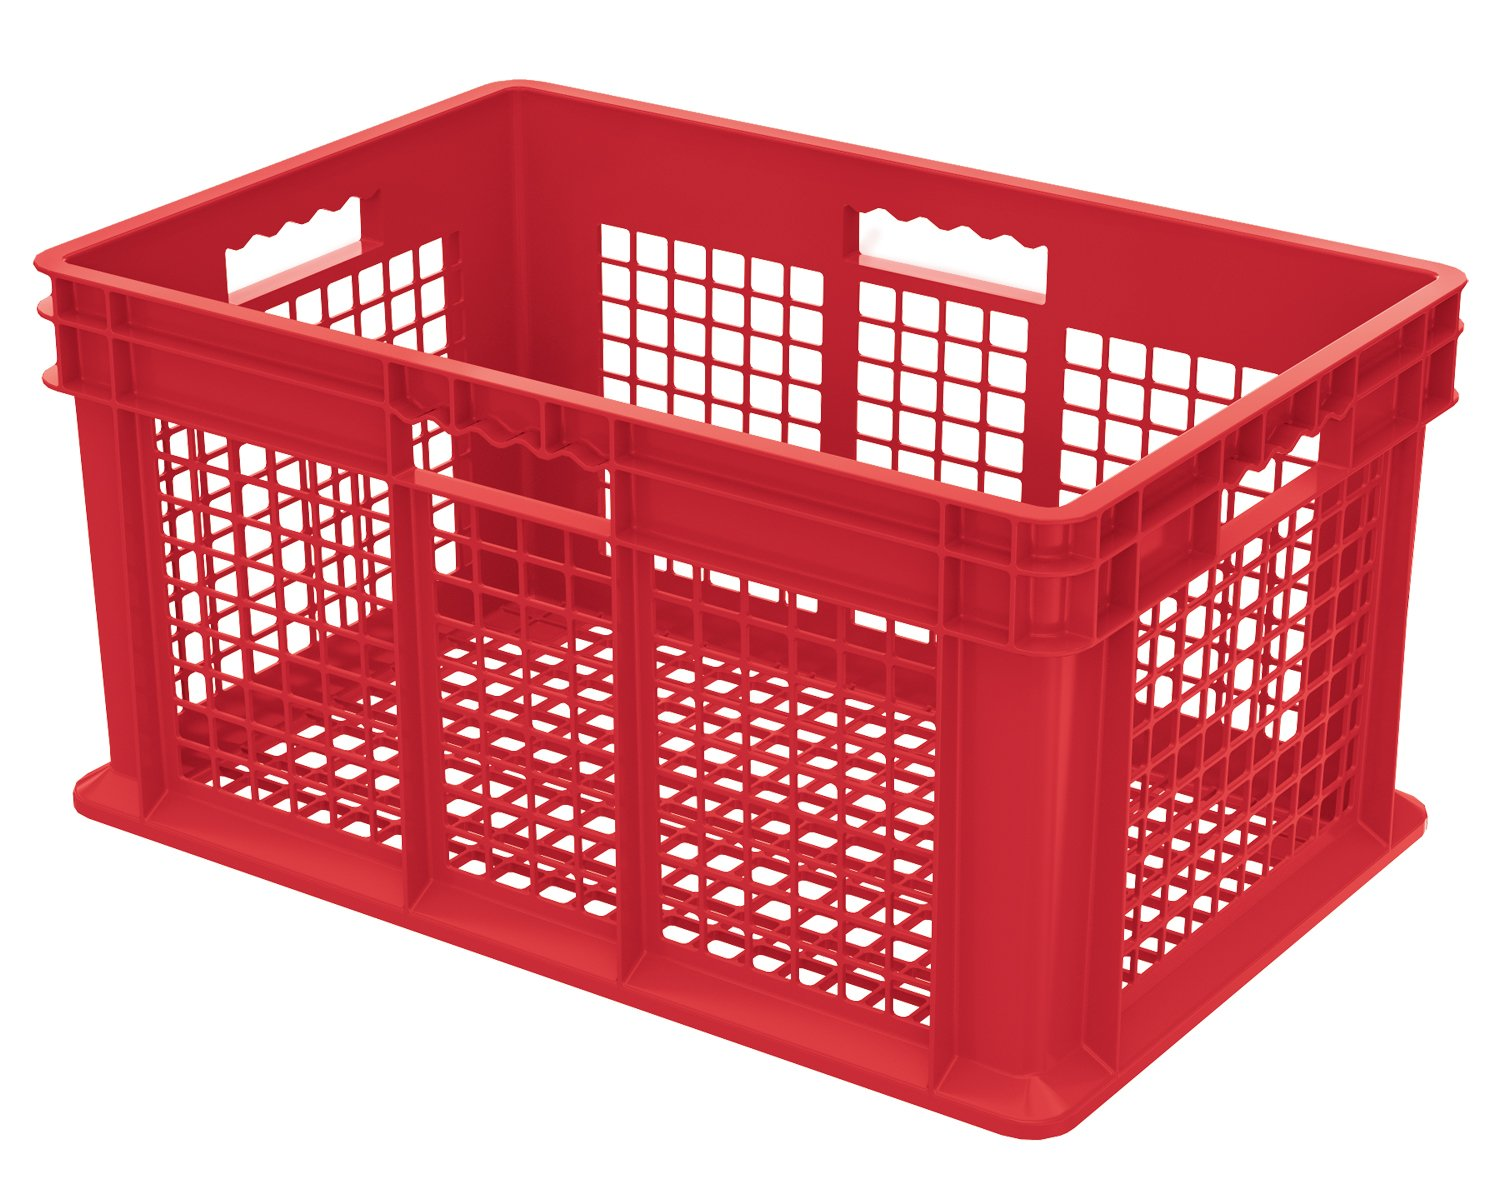 Akro-Mils 37612 24-Inch by 16-Inch by 12-Inch Straight Wall Container Plastic Tote with Mesh Sides and Mesh Base, Case of 3, Red AKRPJ 37612RED CS